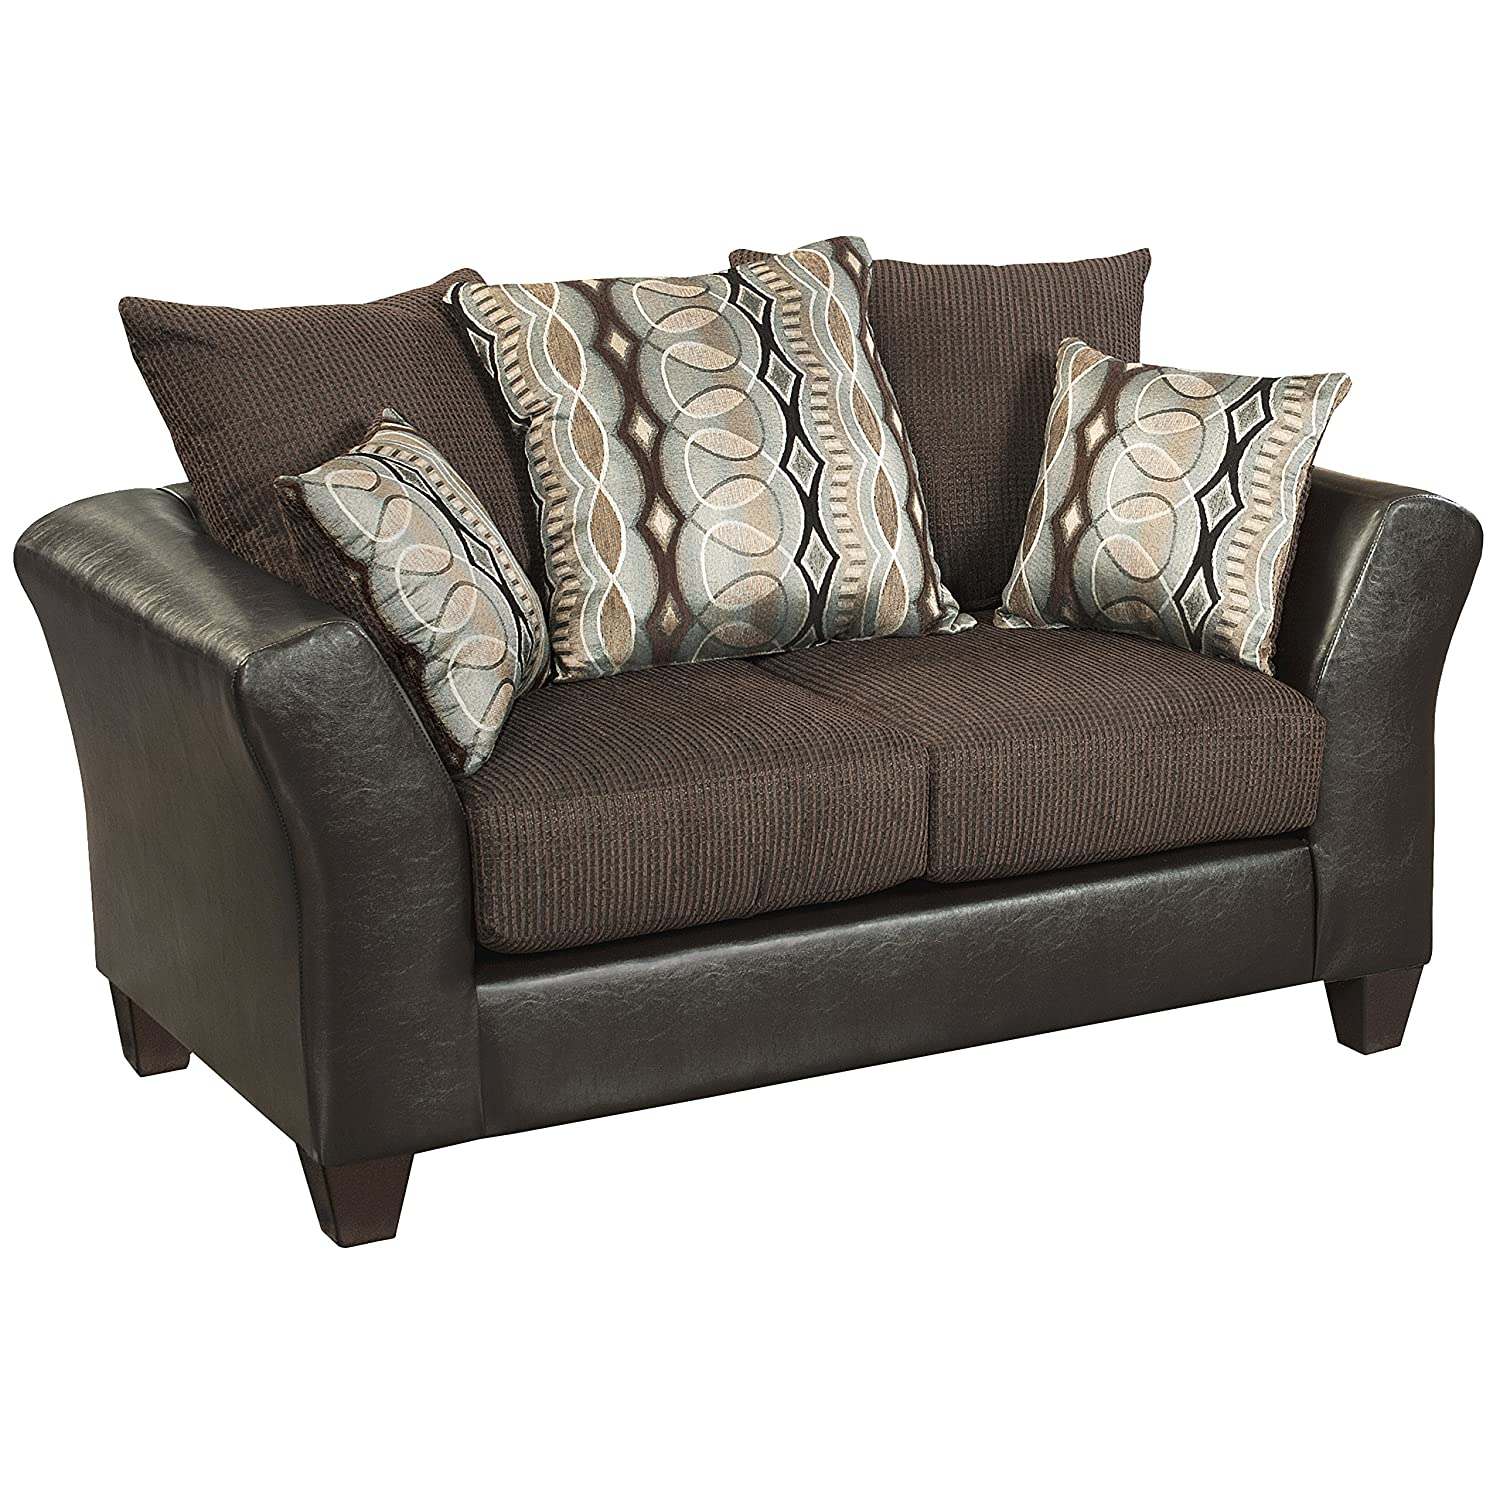 Flash Furniture Riverstone Rip Sable Chenille Loveseat - Brown